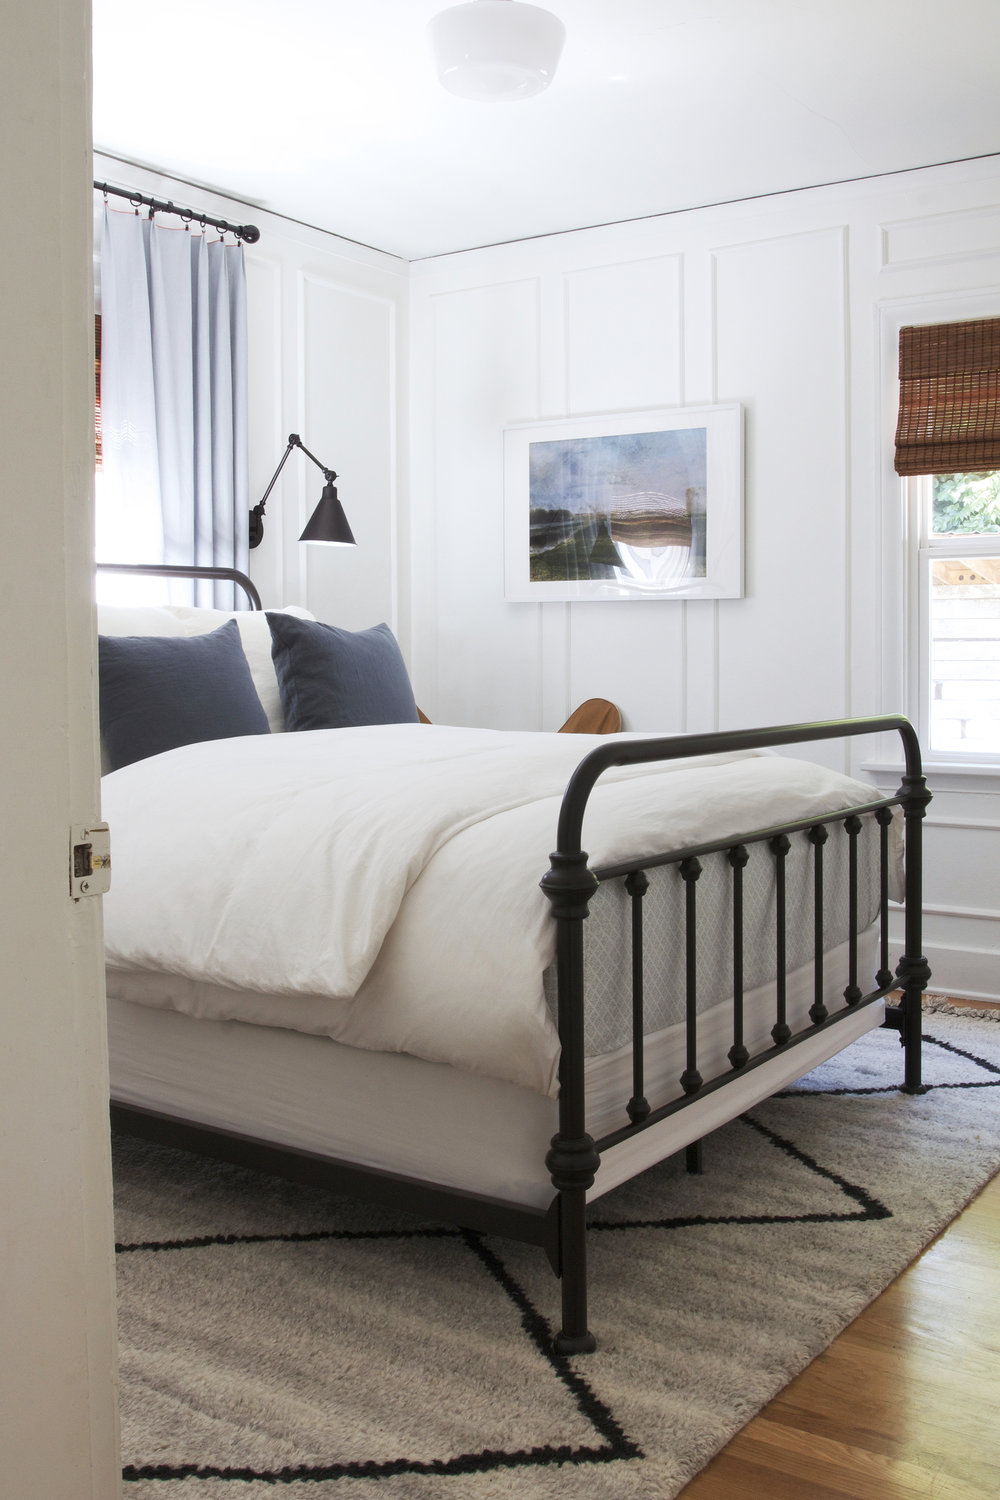 The Grit and Polish - Ravenna 2.0 Master Bedroom From Door.jpg